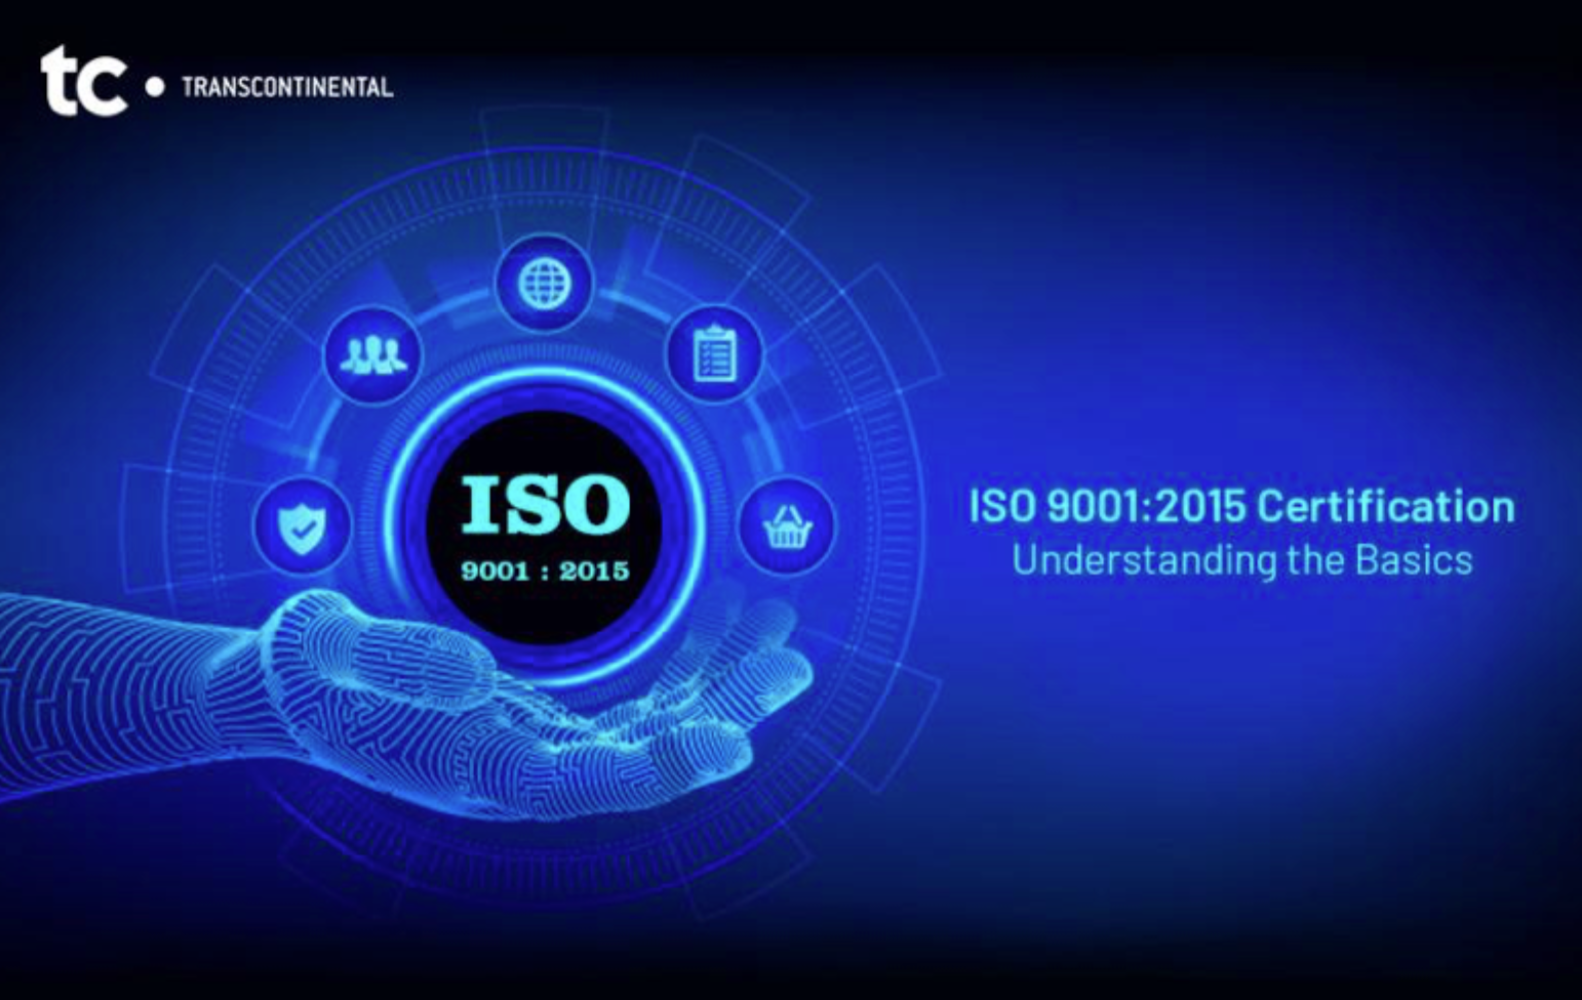 ISO 9001 2015 Certification promotional photo